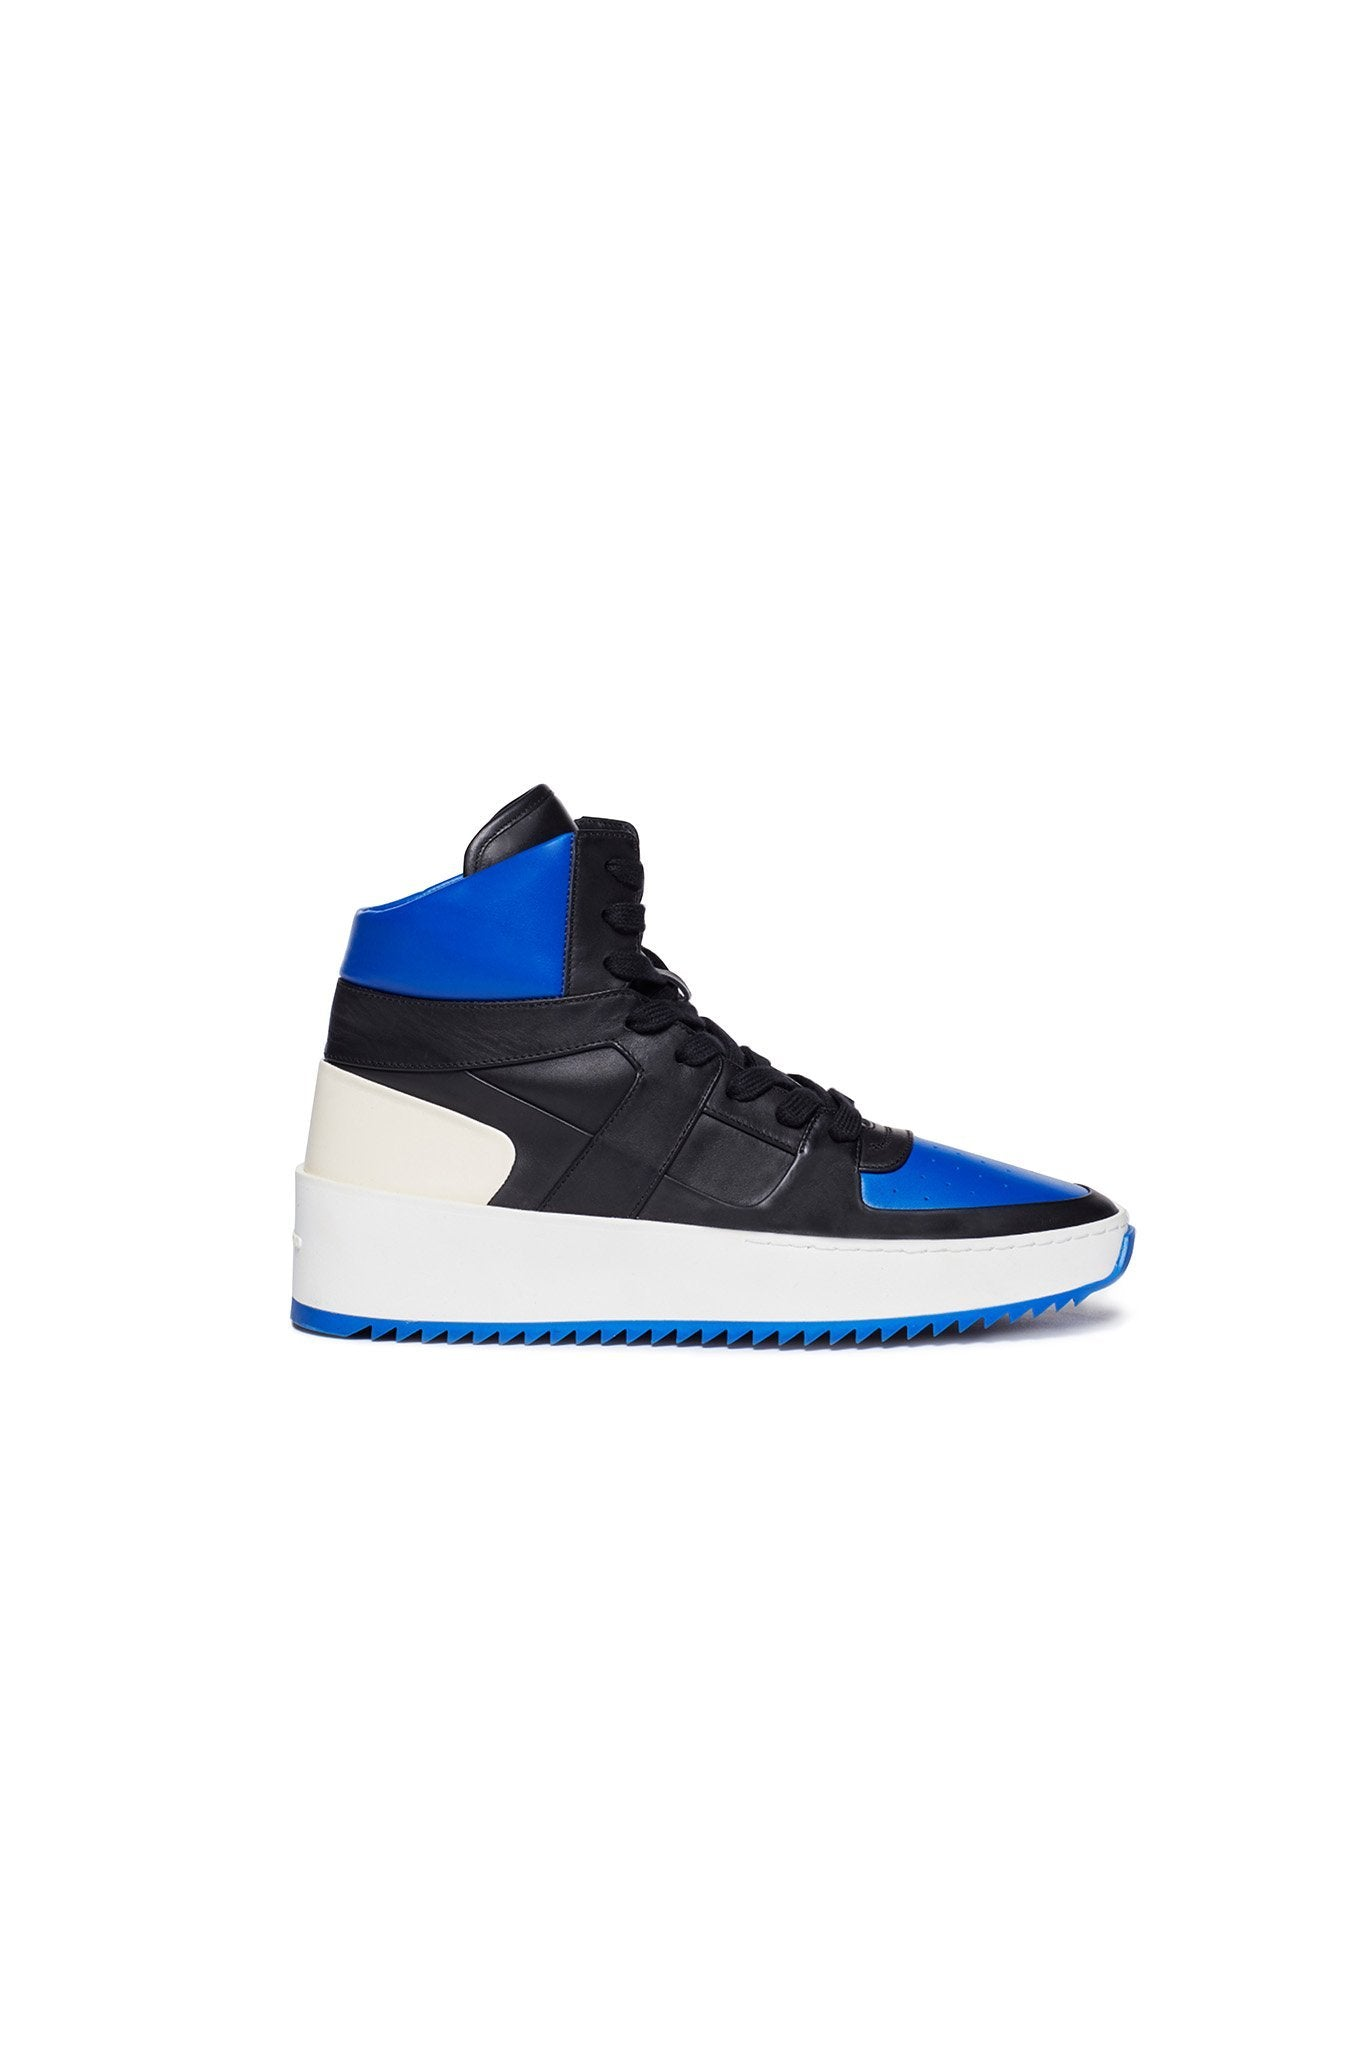 Royal Blue / Black Basketball Sneaker